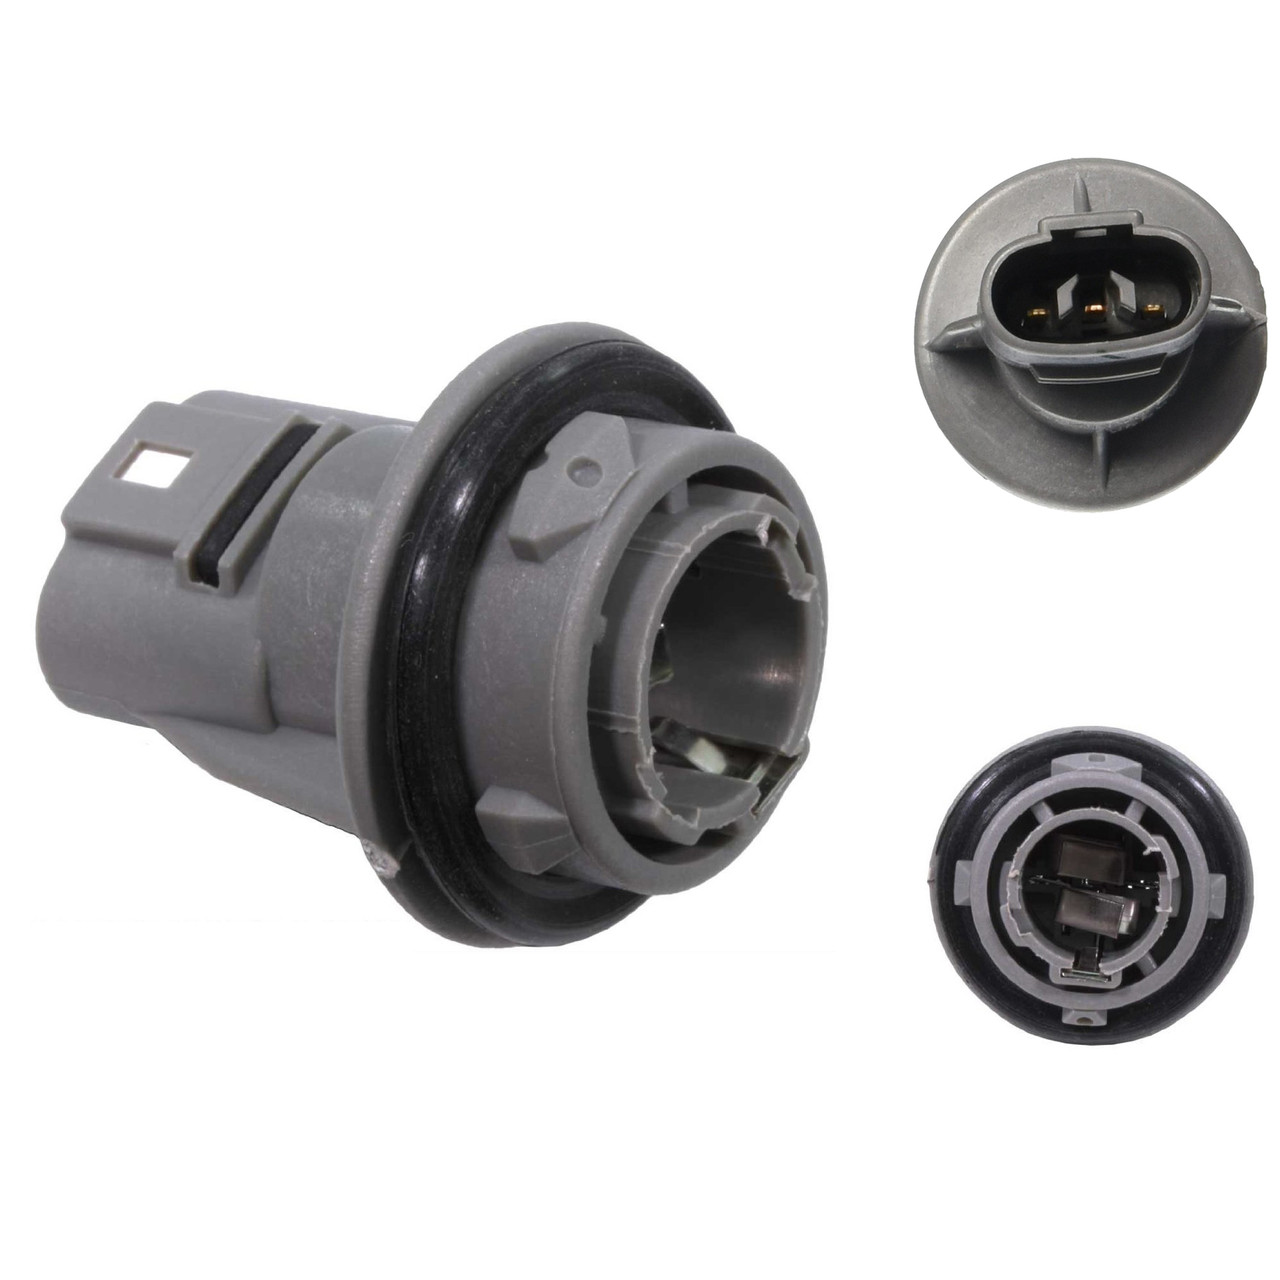 Turn Signal Light Bulb Socket Holder For Honda Civic